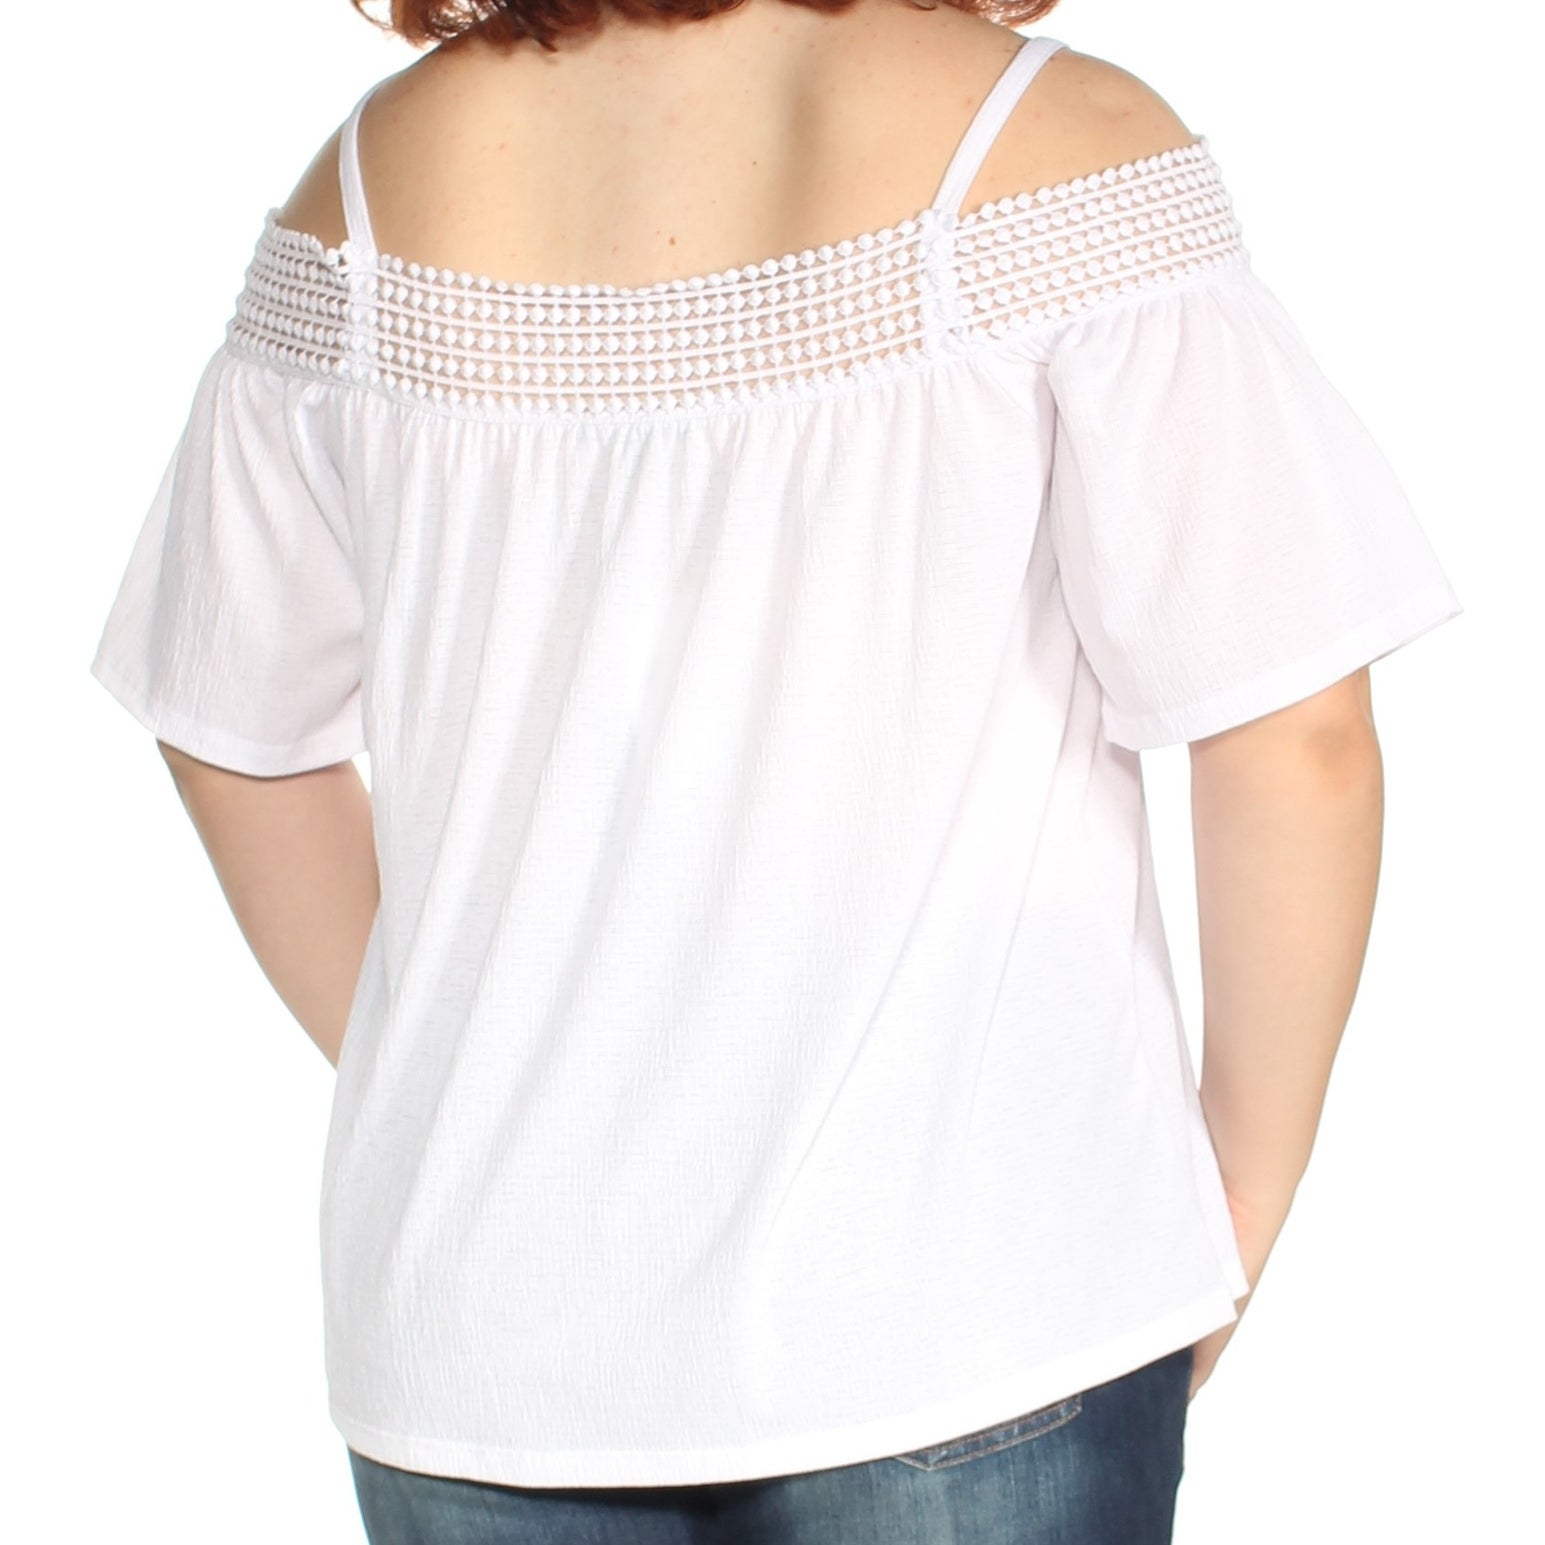 3bcfb09d77939d Shop CABLE AND GAUGE Womens White Cold Shoulder Lace Short Sleeve Square  Neck Top Size  XL - Free Shipping On Orders Over  45 - Overstock - 23456933